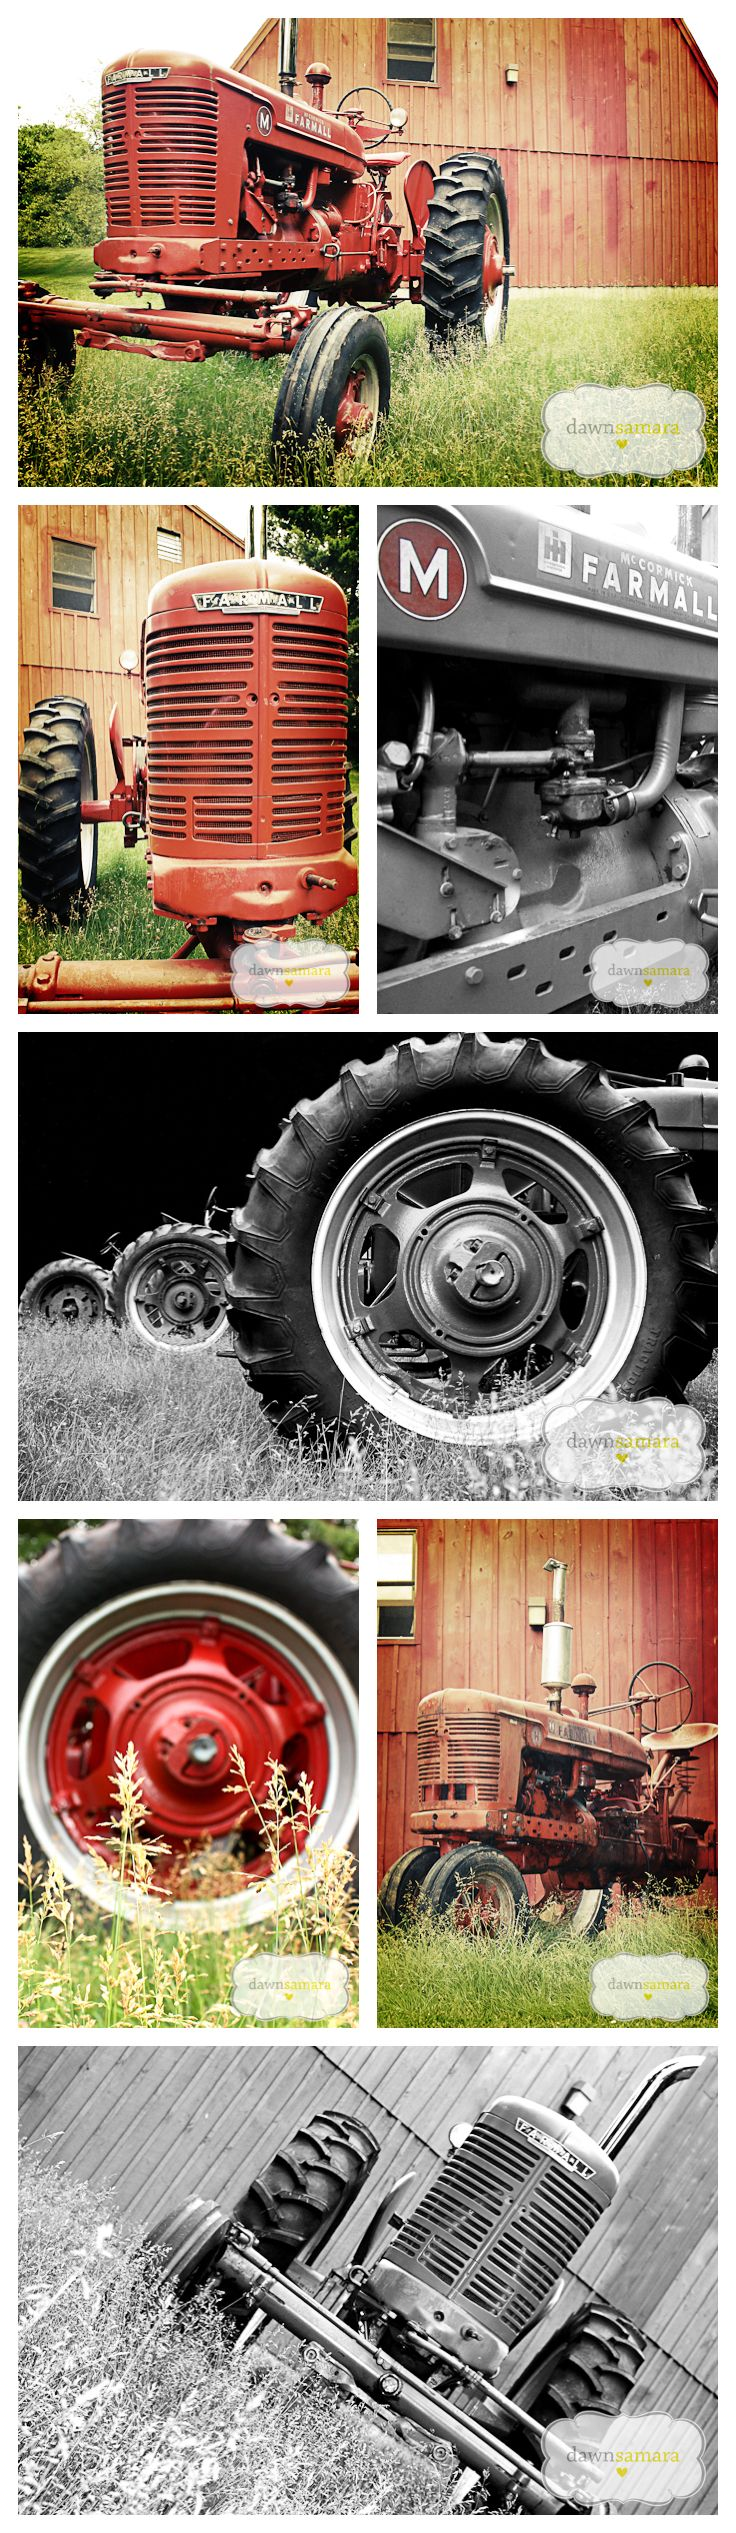 Farmall M , our FFA chapter restored 2 of these